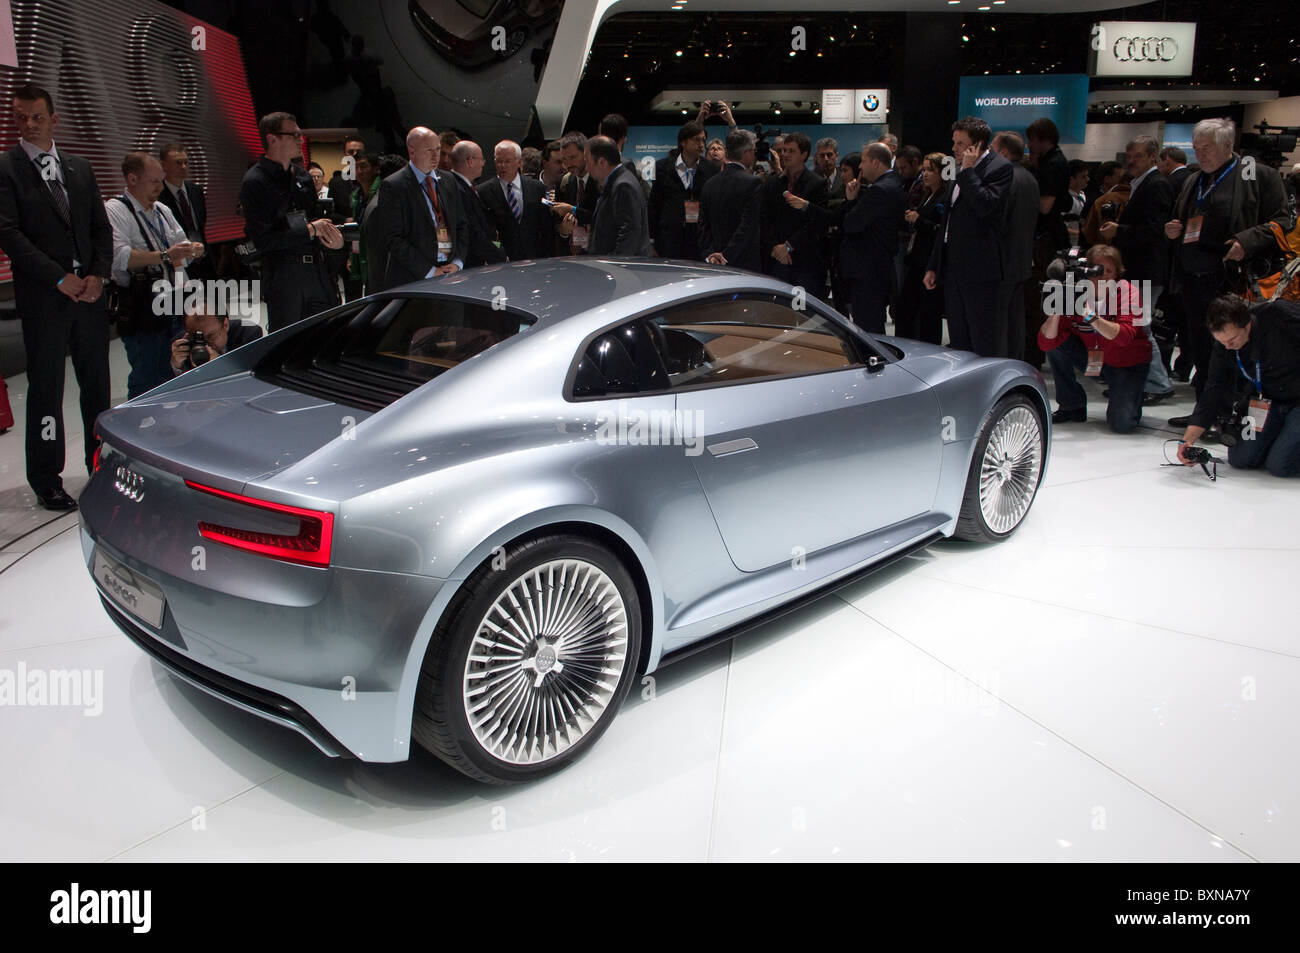 Audi E Tron Electric Sports Car Concept At The 2010 North American  International Auto Show In Detroit